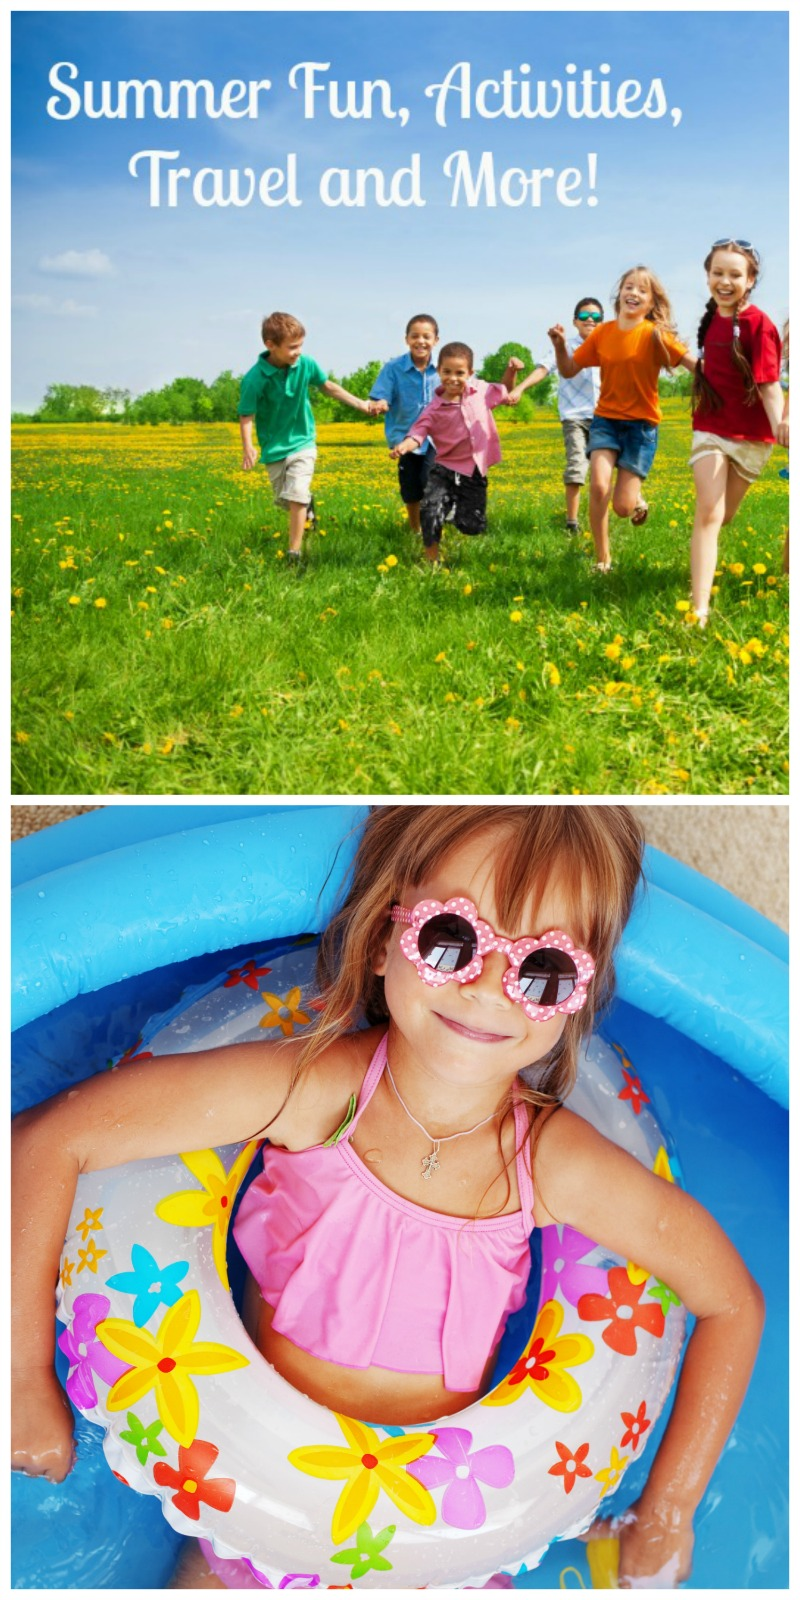 Make this summer the best year yet with this list of Summer Fun, Activities, Travel and More!